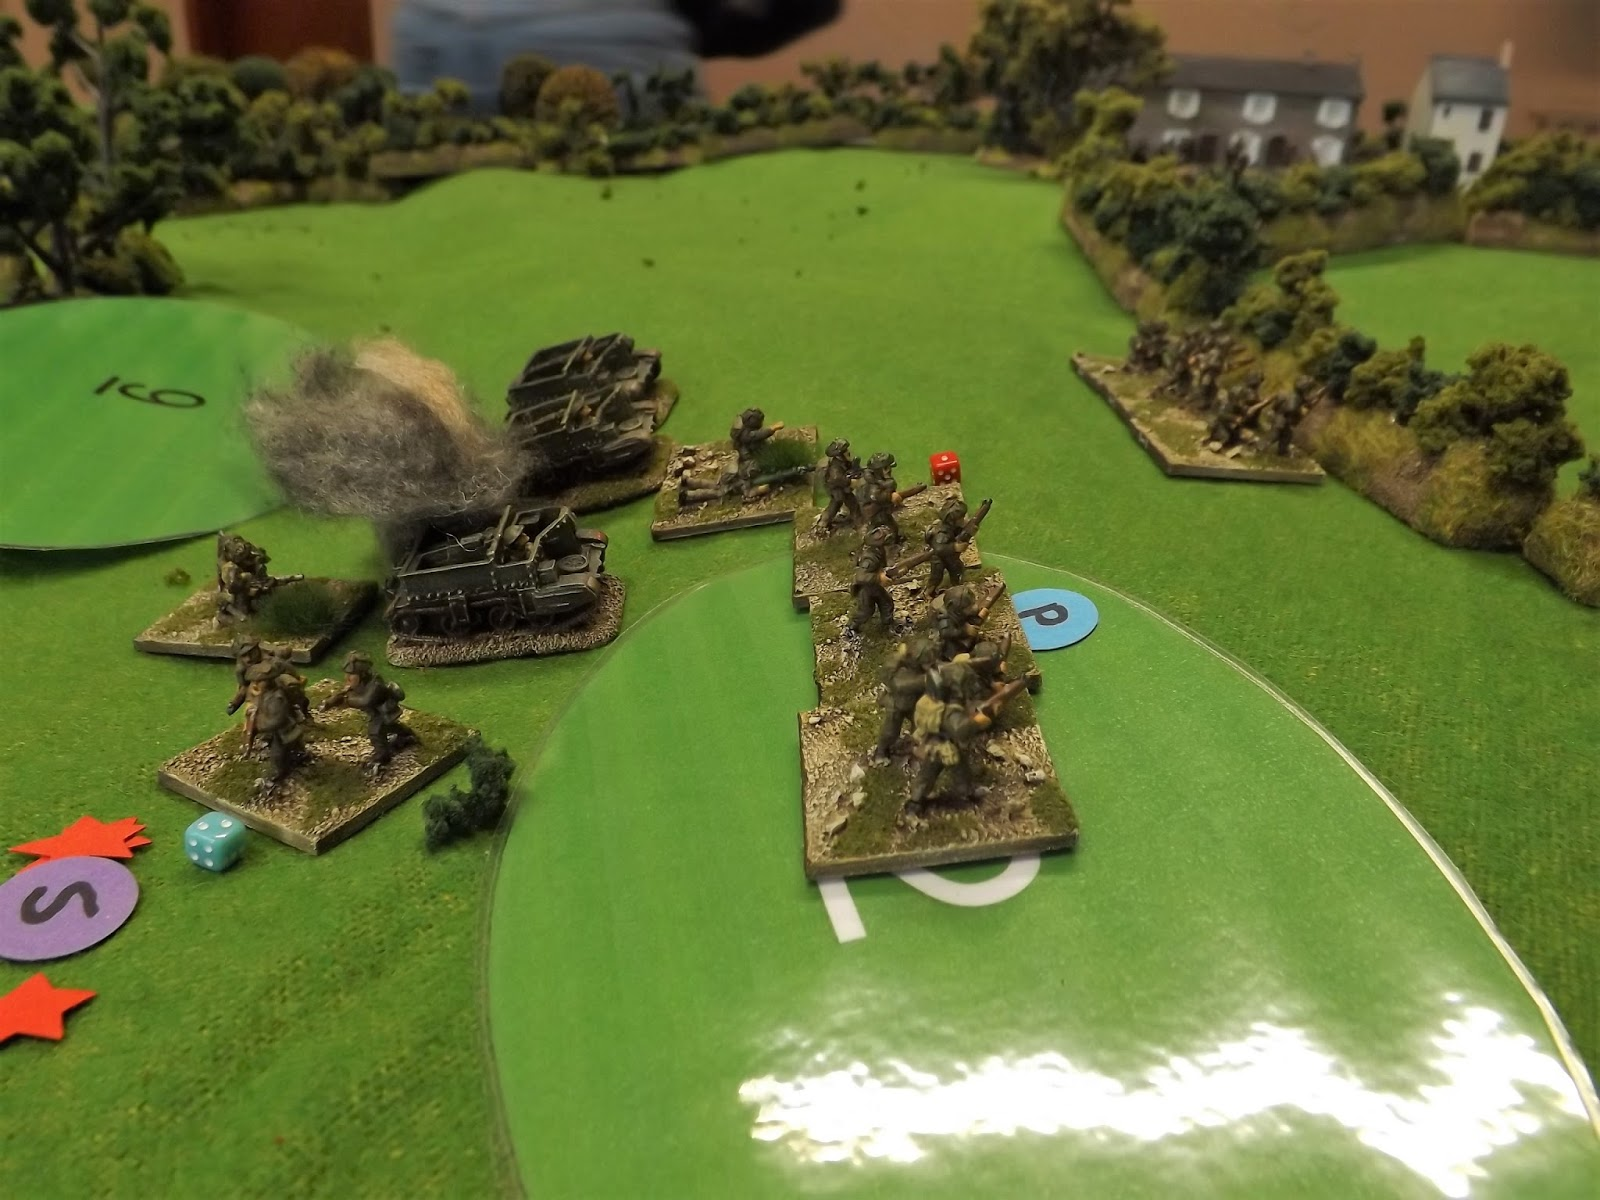 Meanwhile the British flank advance on Hill 203 is caught in open ground by a hail of machine gun fire and anti-tank shells